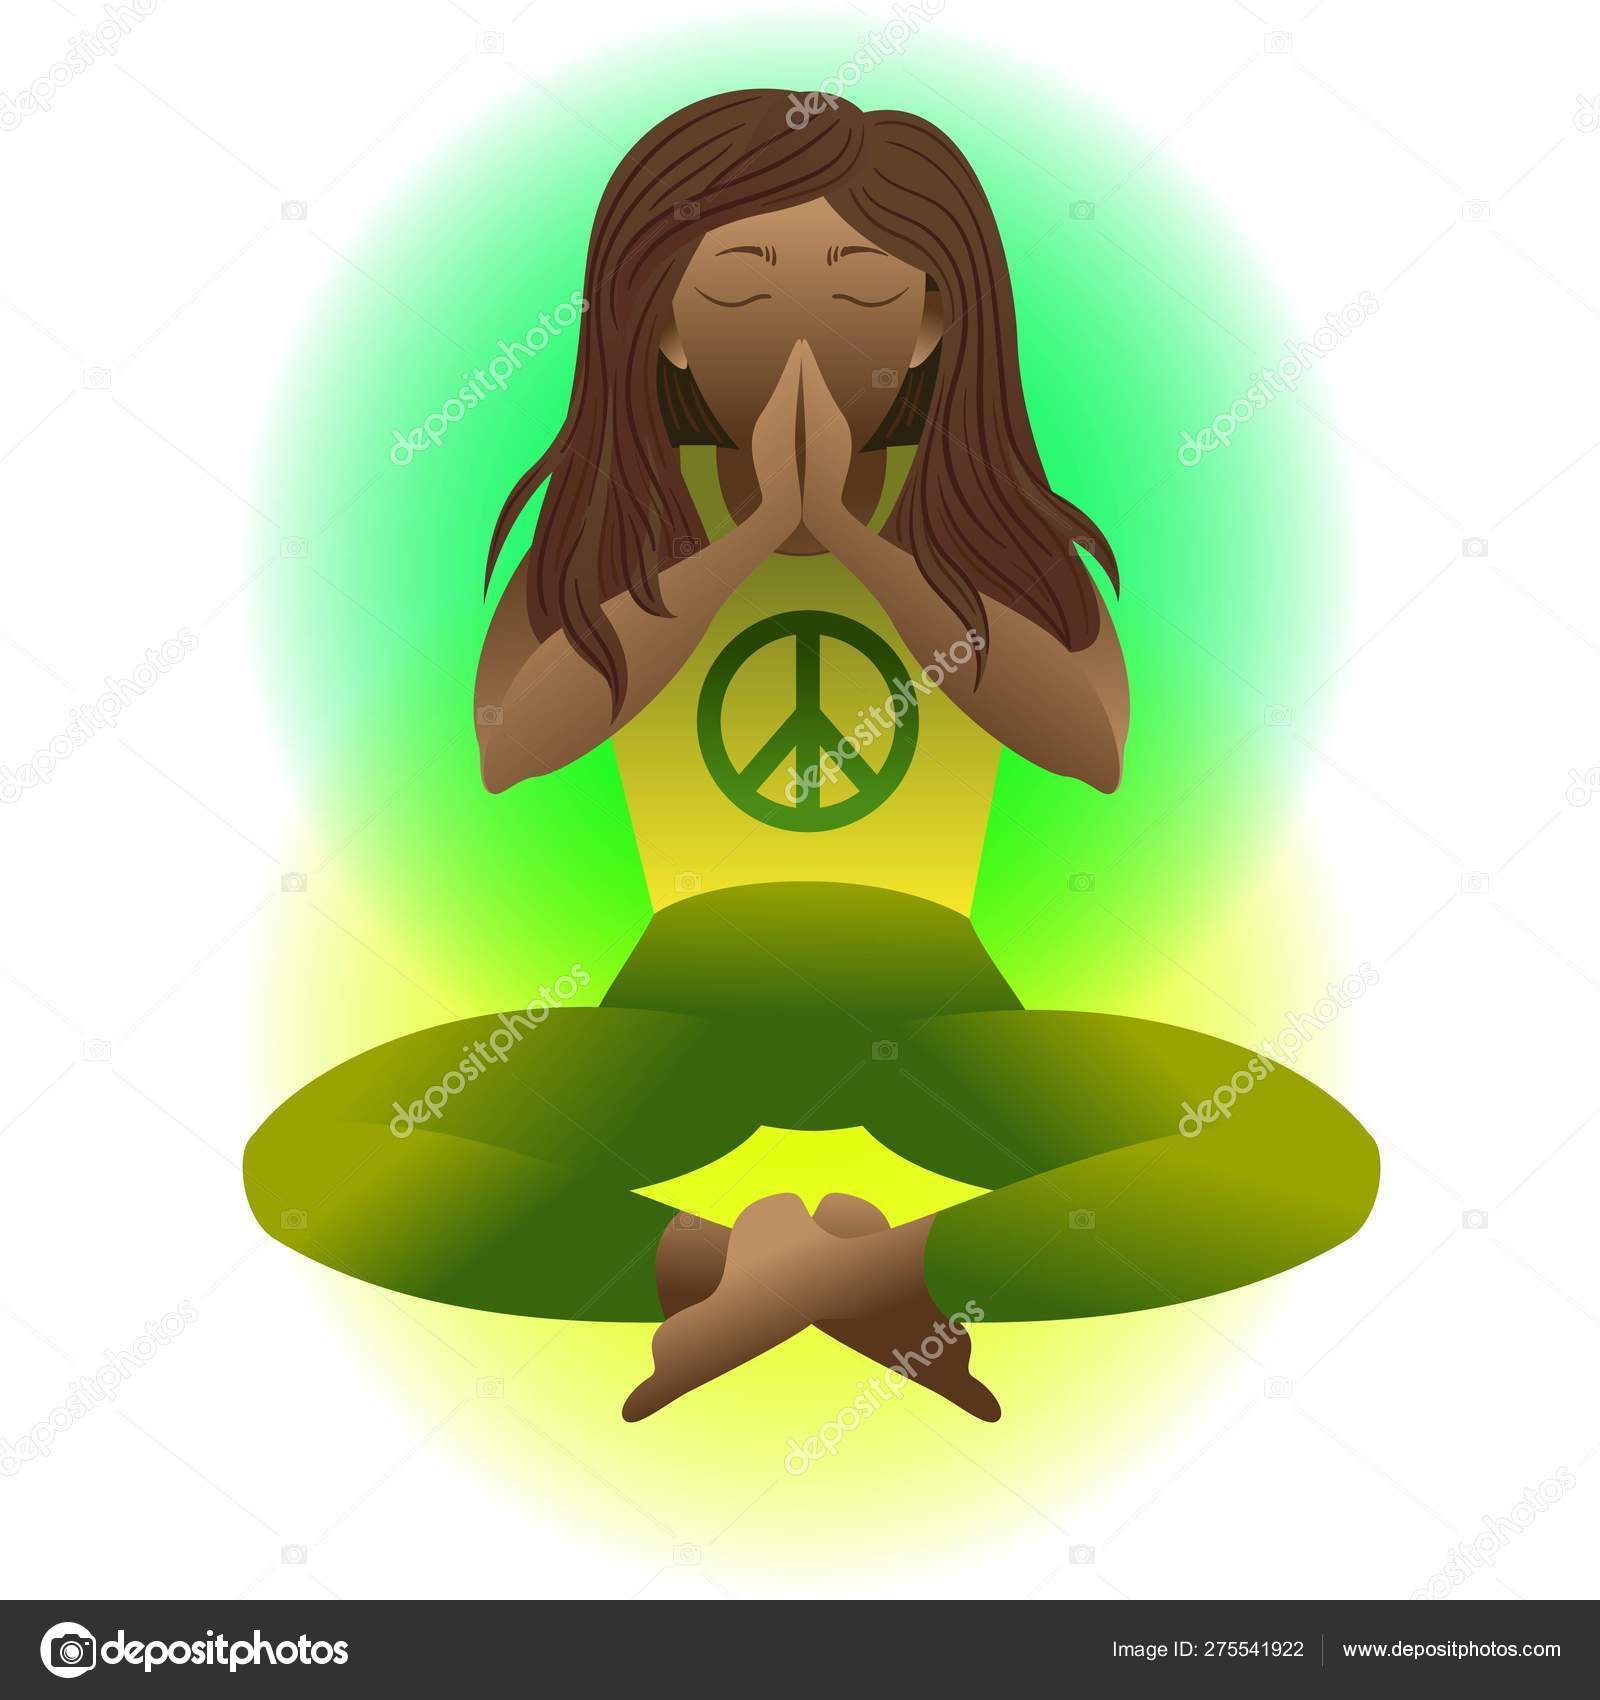 Yoga Prayer Pacific Symbol Of Peace Woman In Meditation Lotus Position Vector Flat Illustration Relaxation Cartoon Girl Sitting With Legs Crossed And Arms Folded Eyes Closed Namaste Stock Vector C Shik Shik